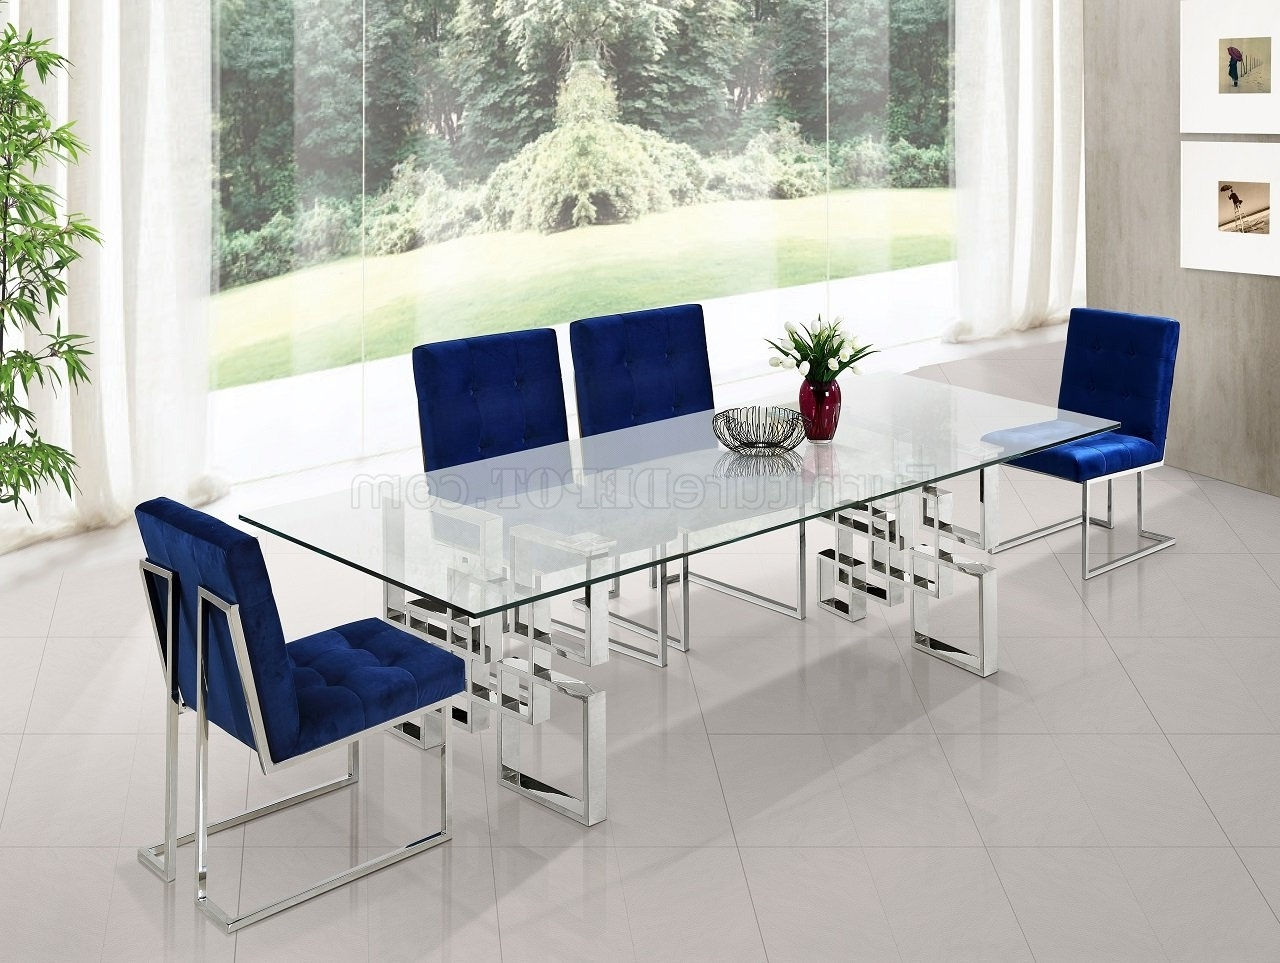 Alexis 731 Chrome Dining Table W/glass Top & Optional Chairs Pertaining To Well Liked Chrome Dining Room Chairs (View 1 of 25)